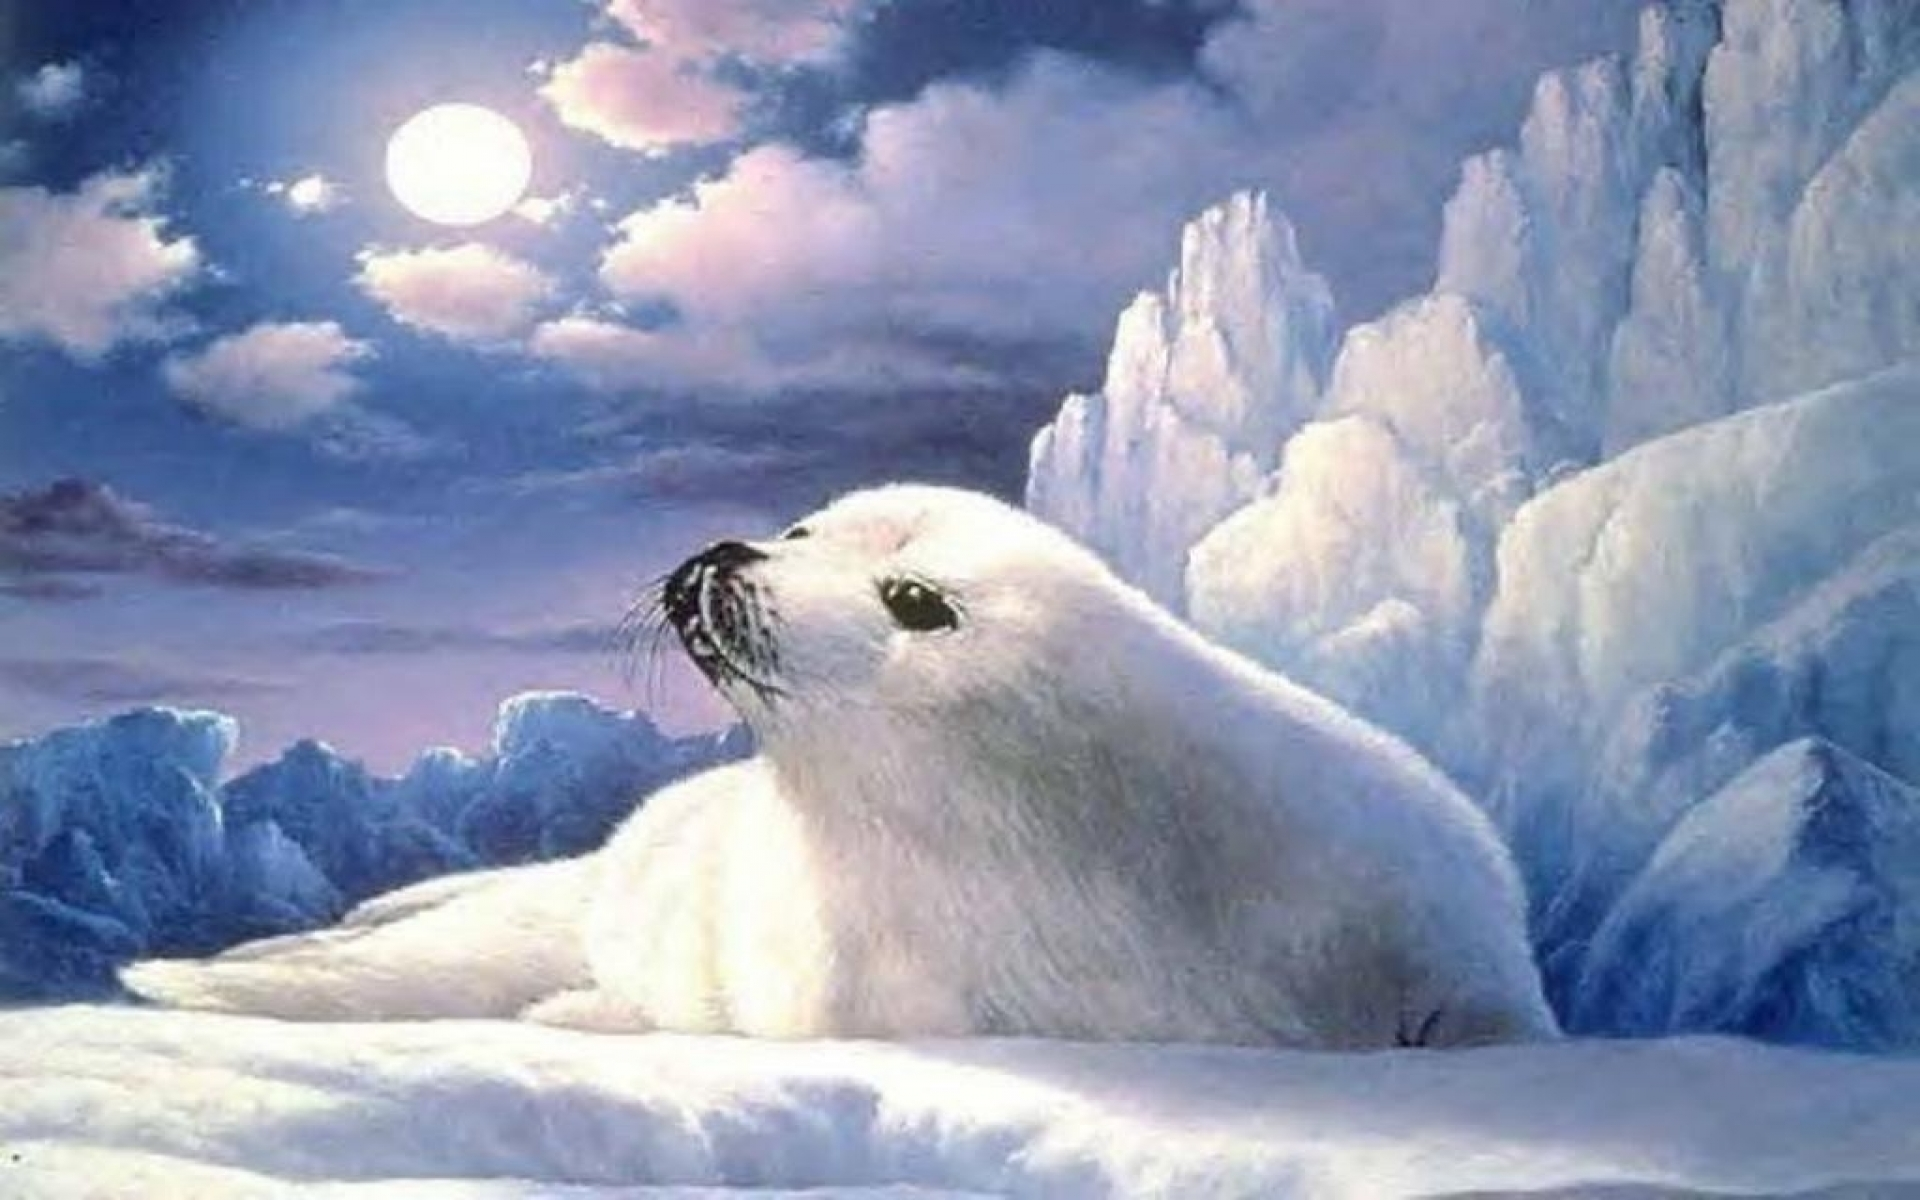 Animated Moon Wallpaper Cute Lonely Seal Ice Berg Moon Wallpapers Cute Lonely